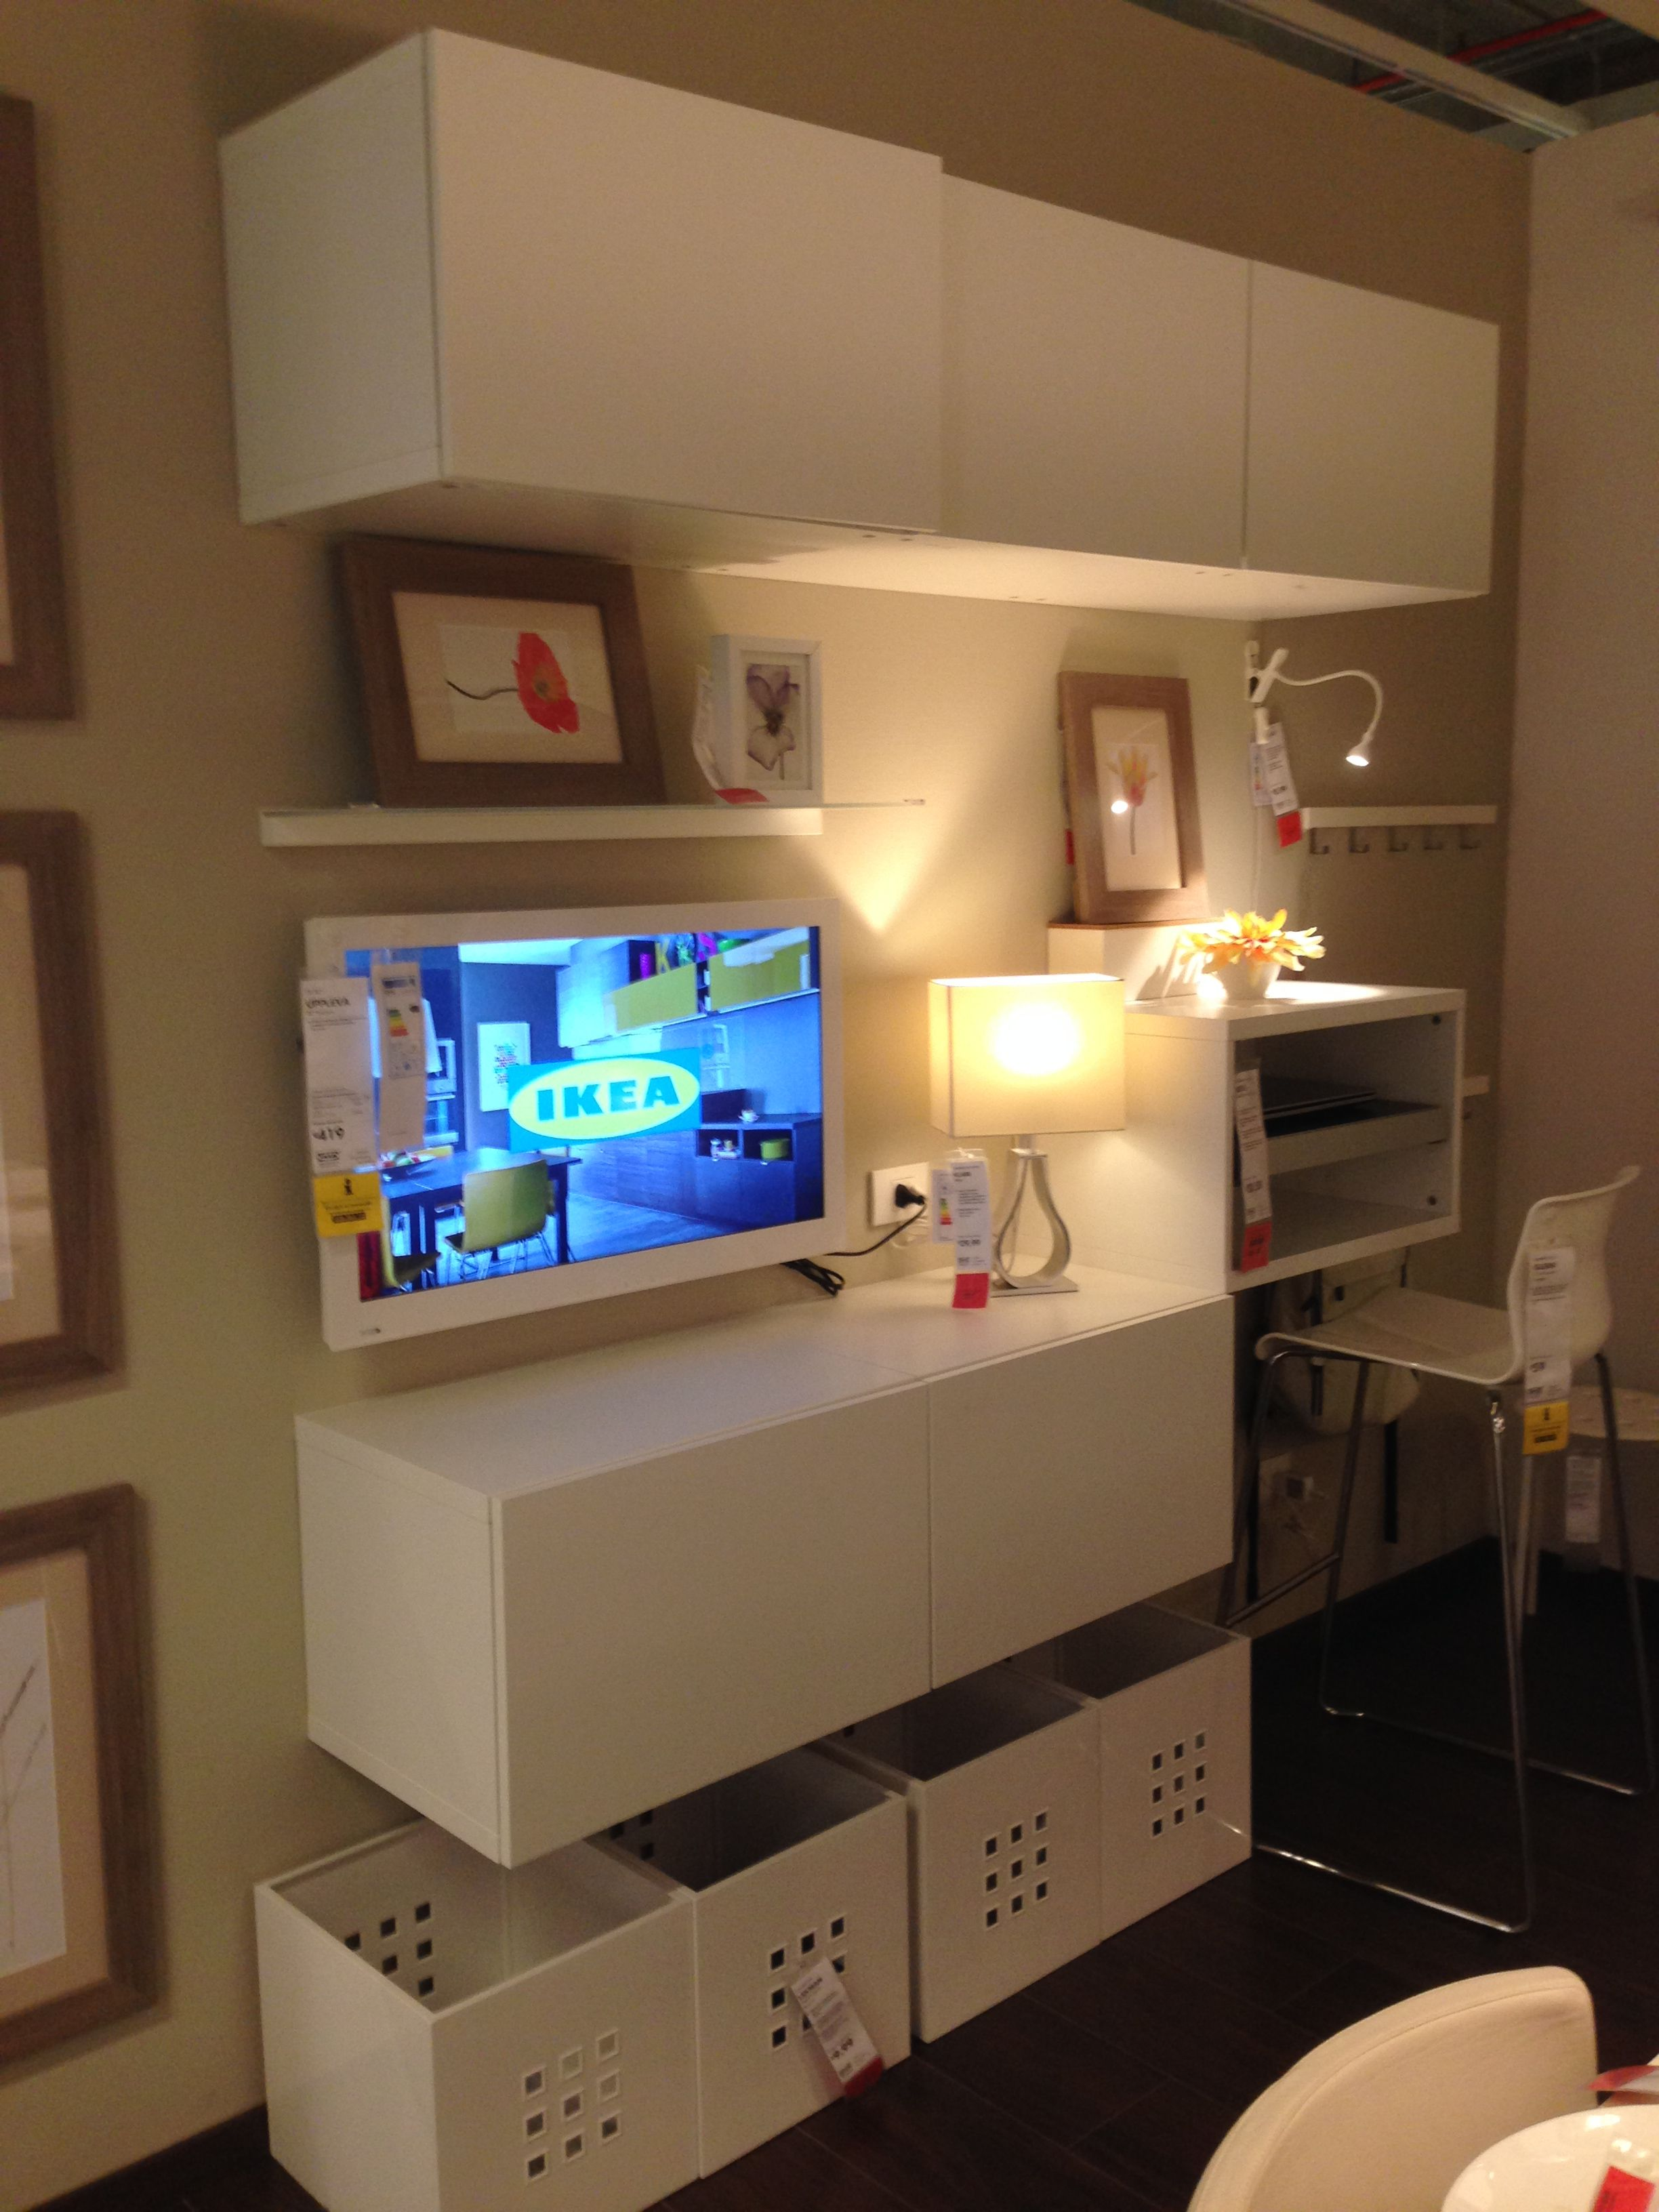 Mobile tv pc ikea per la cucina idee for the home for Ikea mobile tv